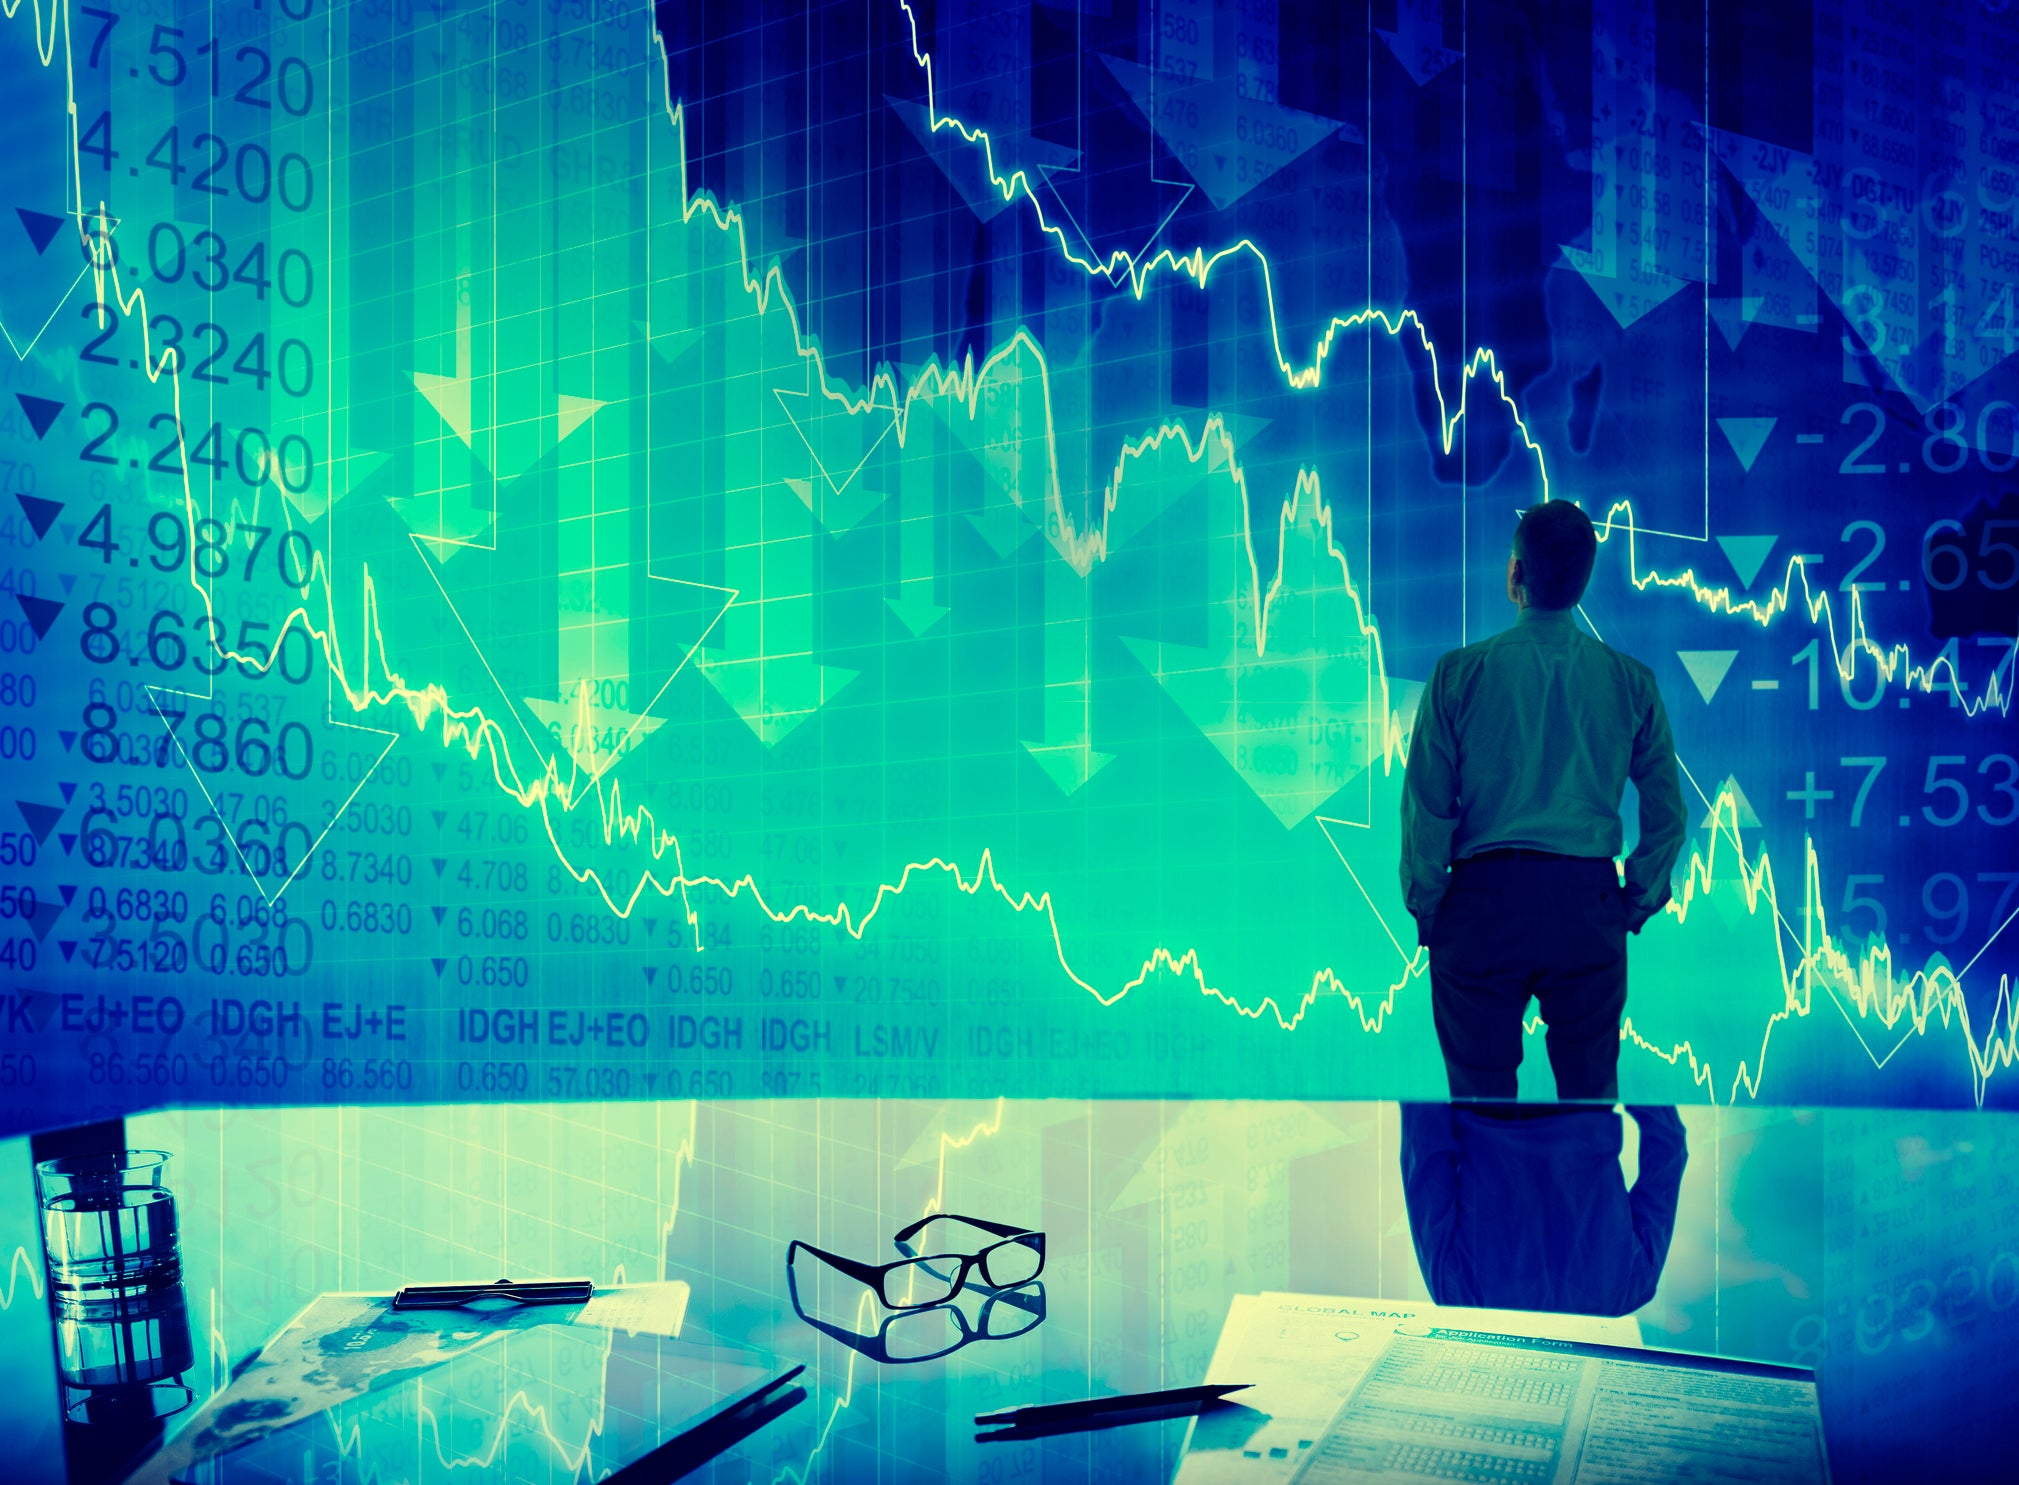 3 Best Dividend Stocks to Buy During a Stock Market Crash | The Motley Fool